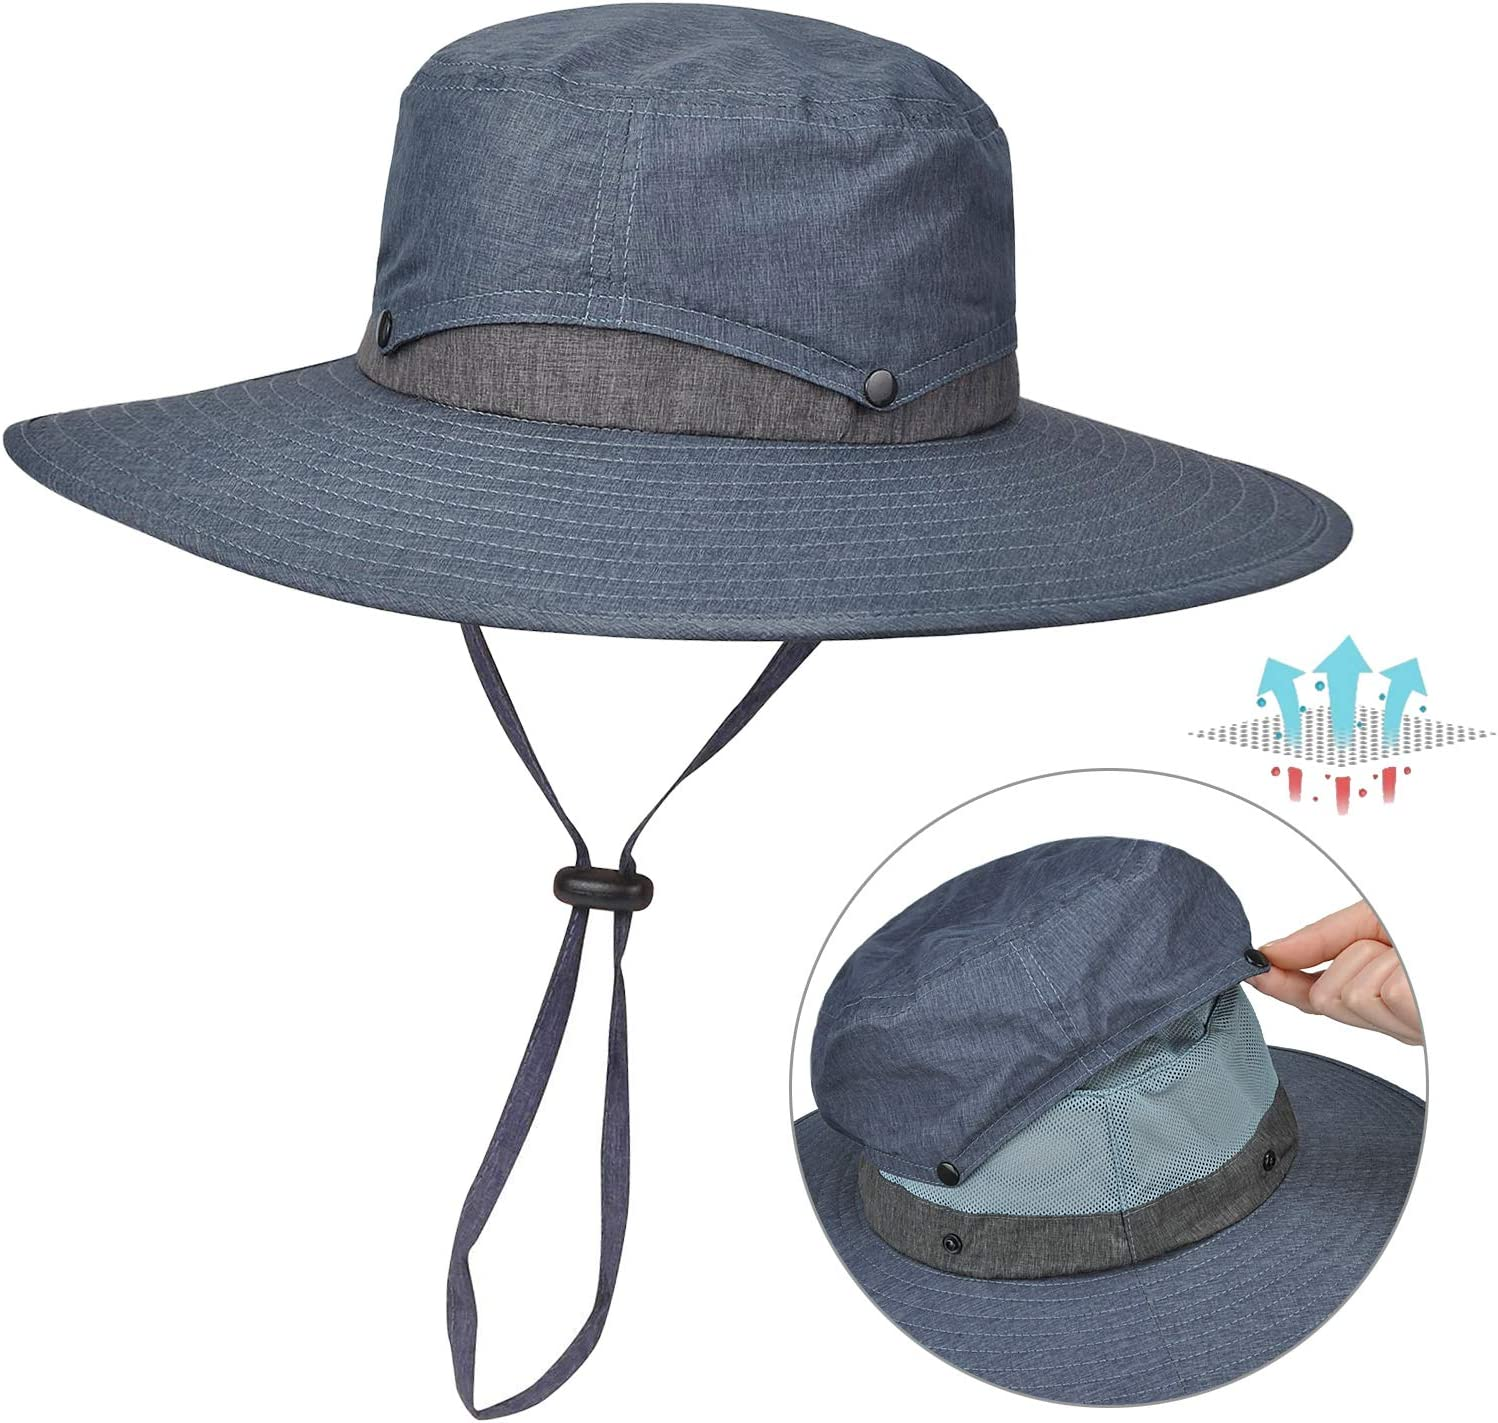 Tirrinia Outdoor Sun Protection Fishing Cap with Neck Flap, Wide Brim Sun Hat for Travel Camping Hiking Hunting Boating Safari Cap with Adjustable Drawstring